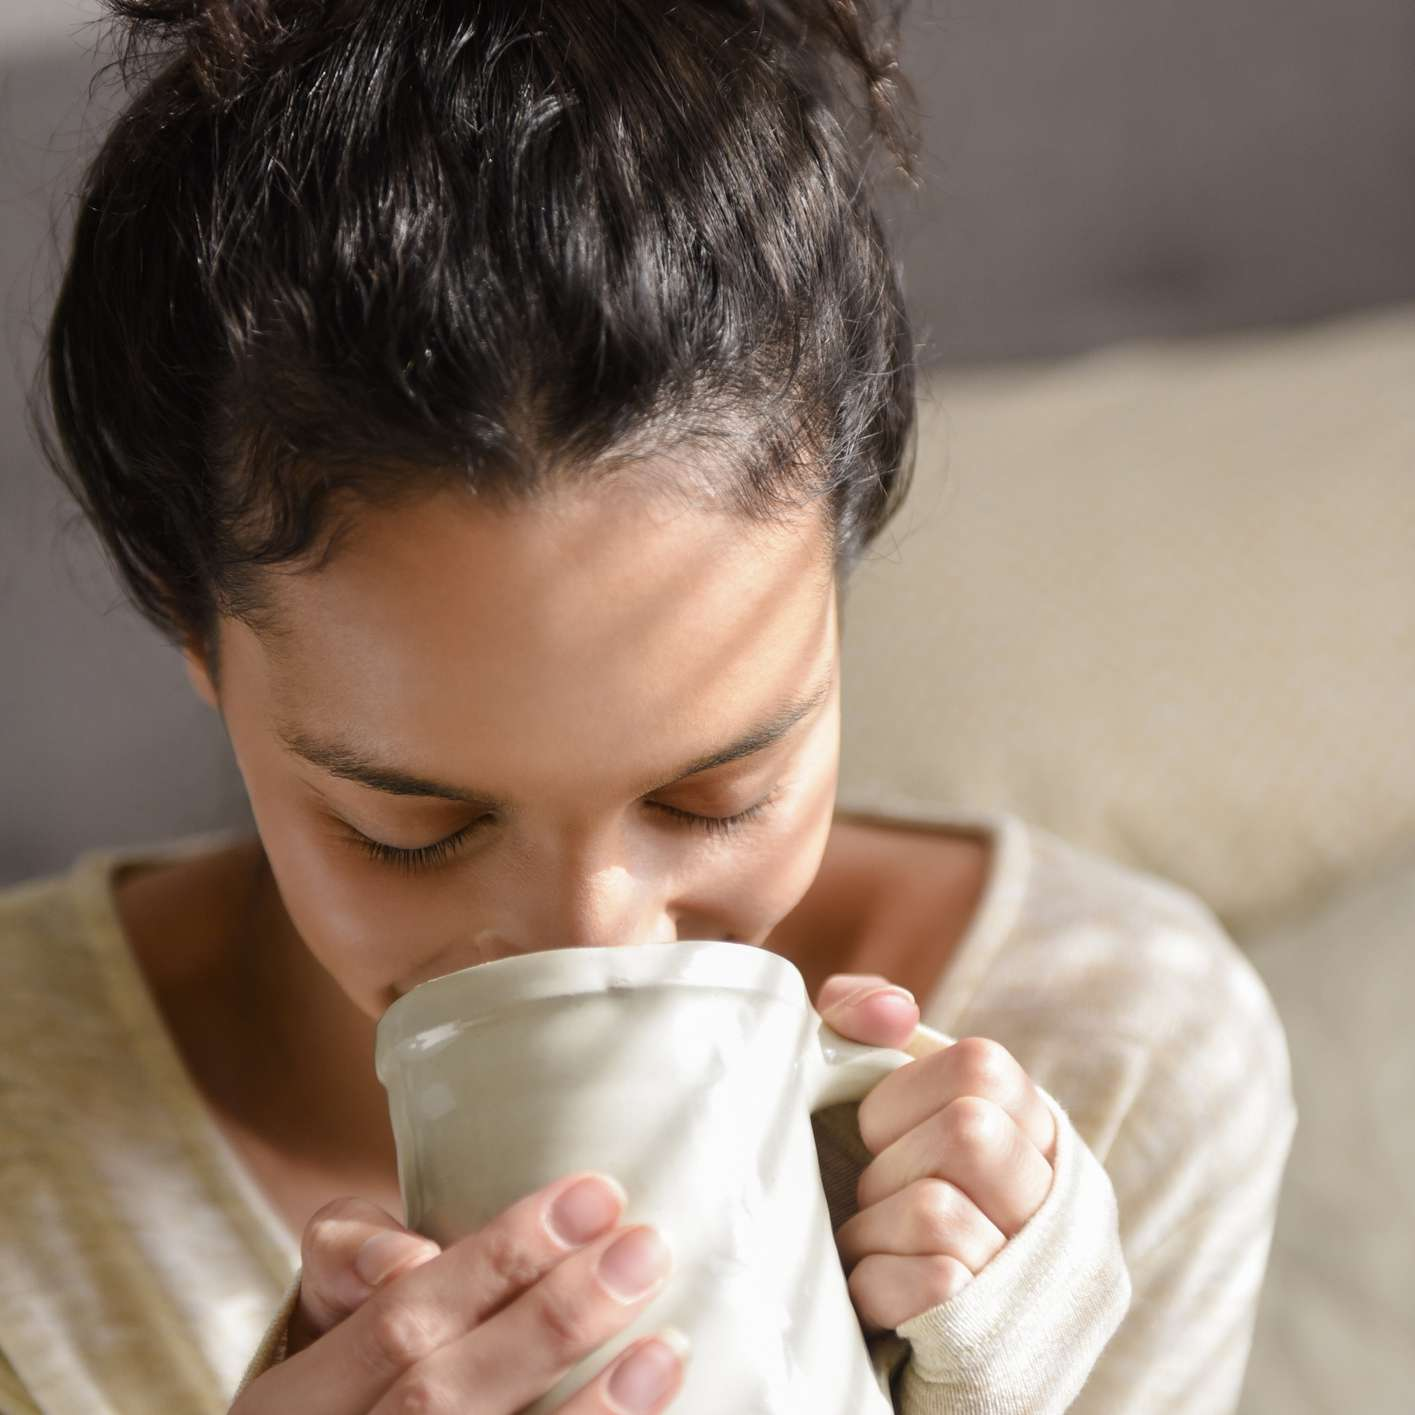 woman sipping coffee from a mug